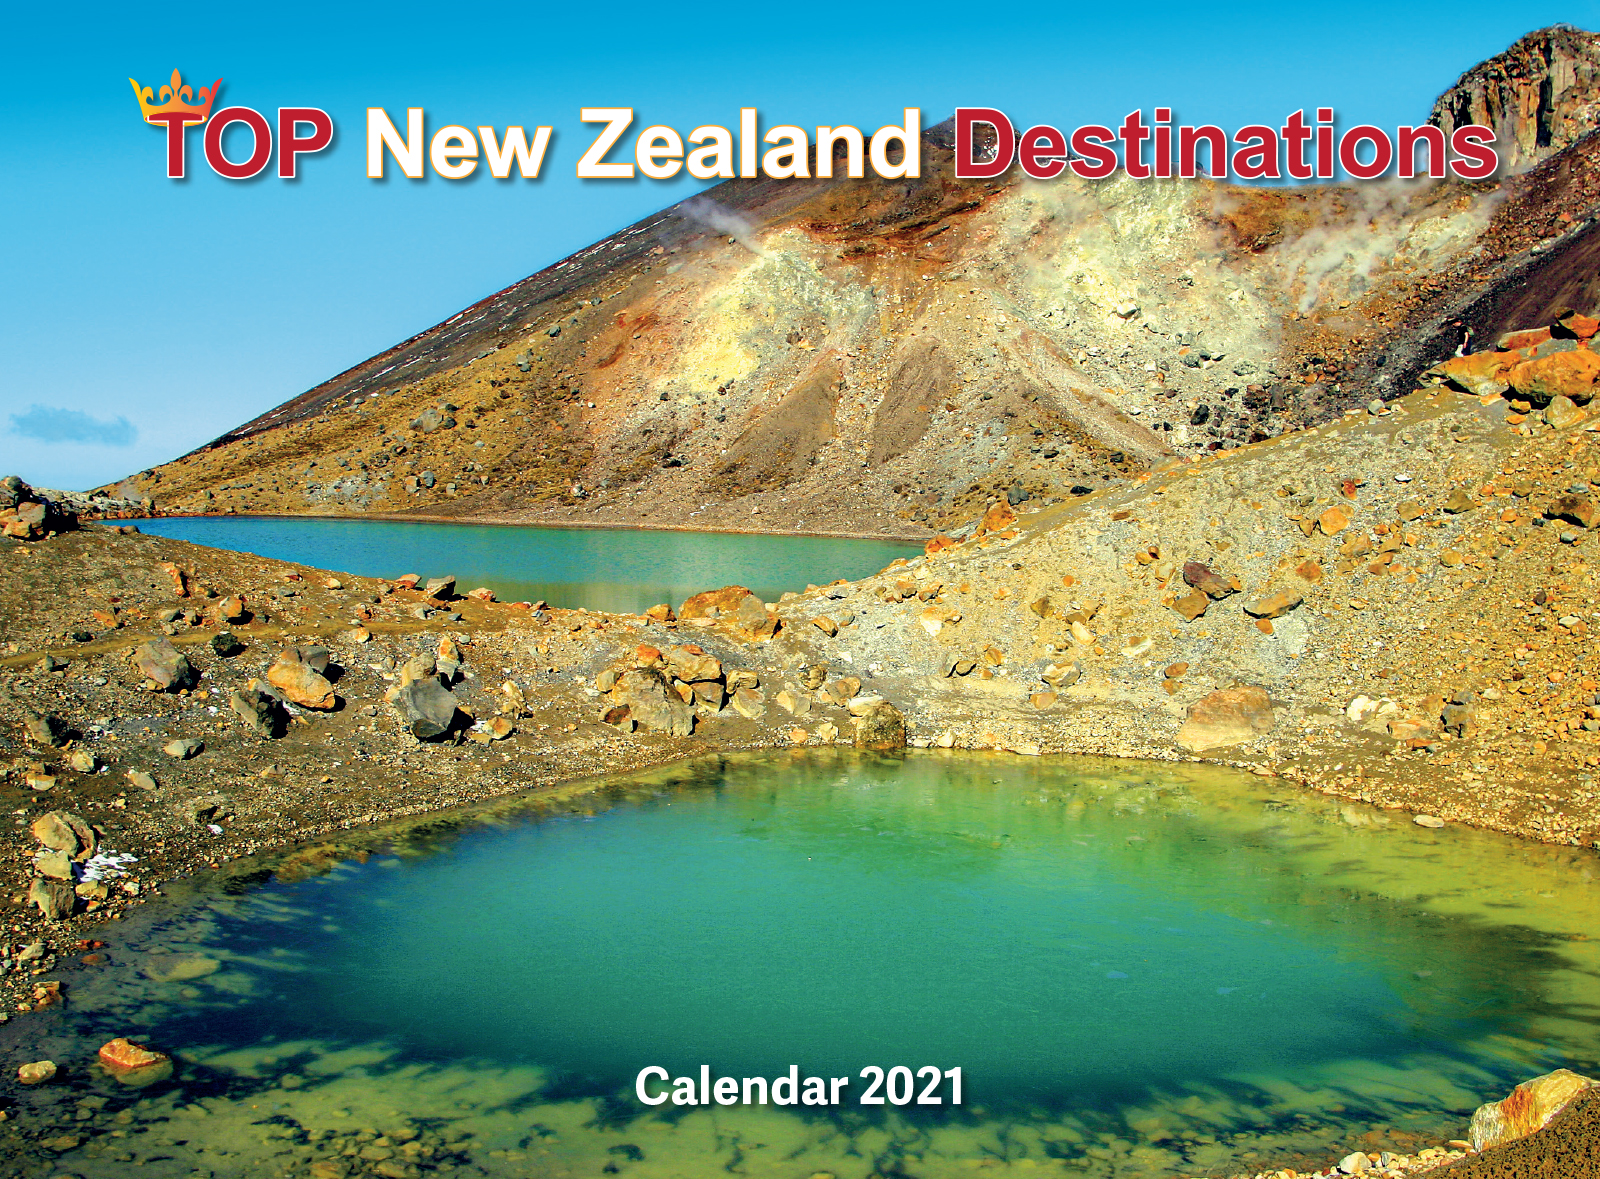 Top New Zealand Destinations : Corporate 2021